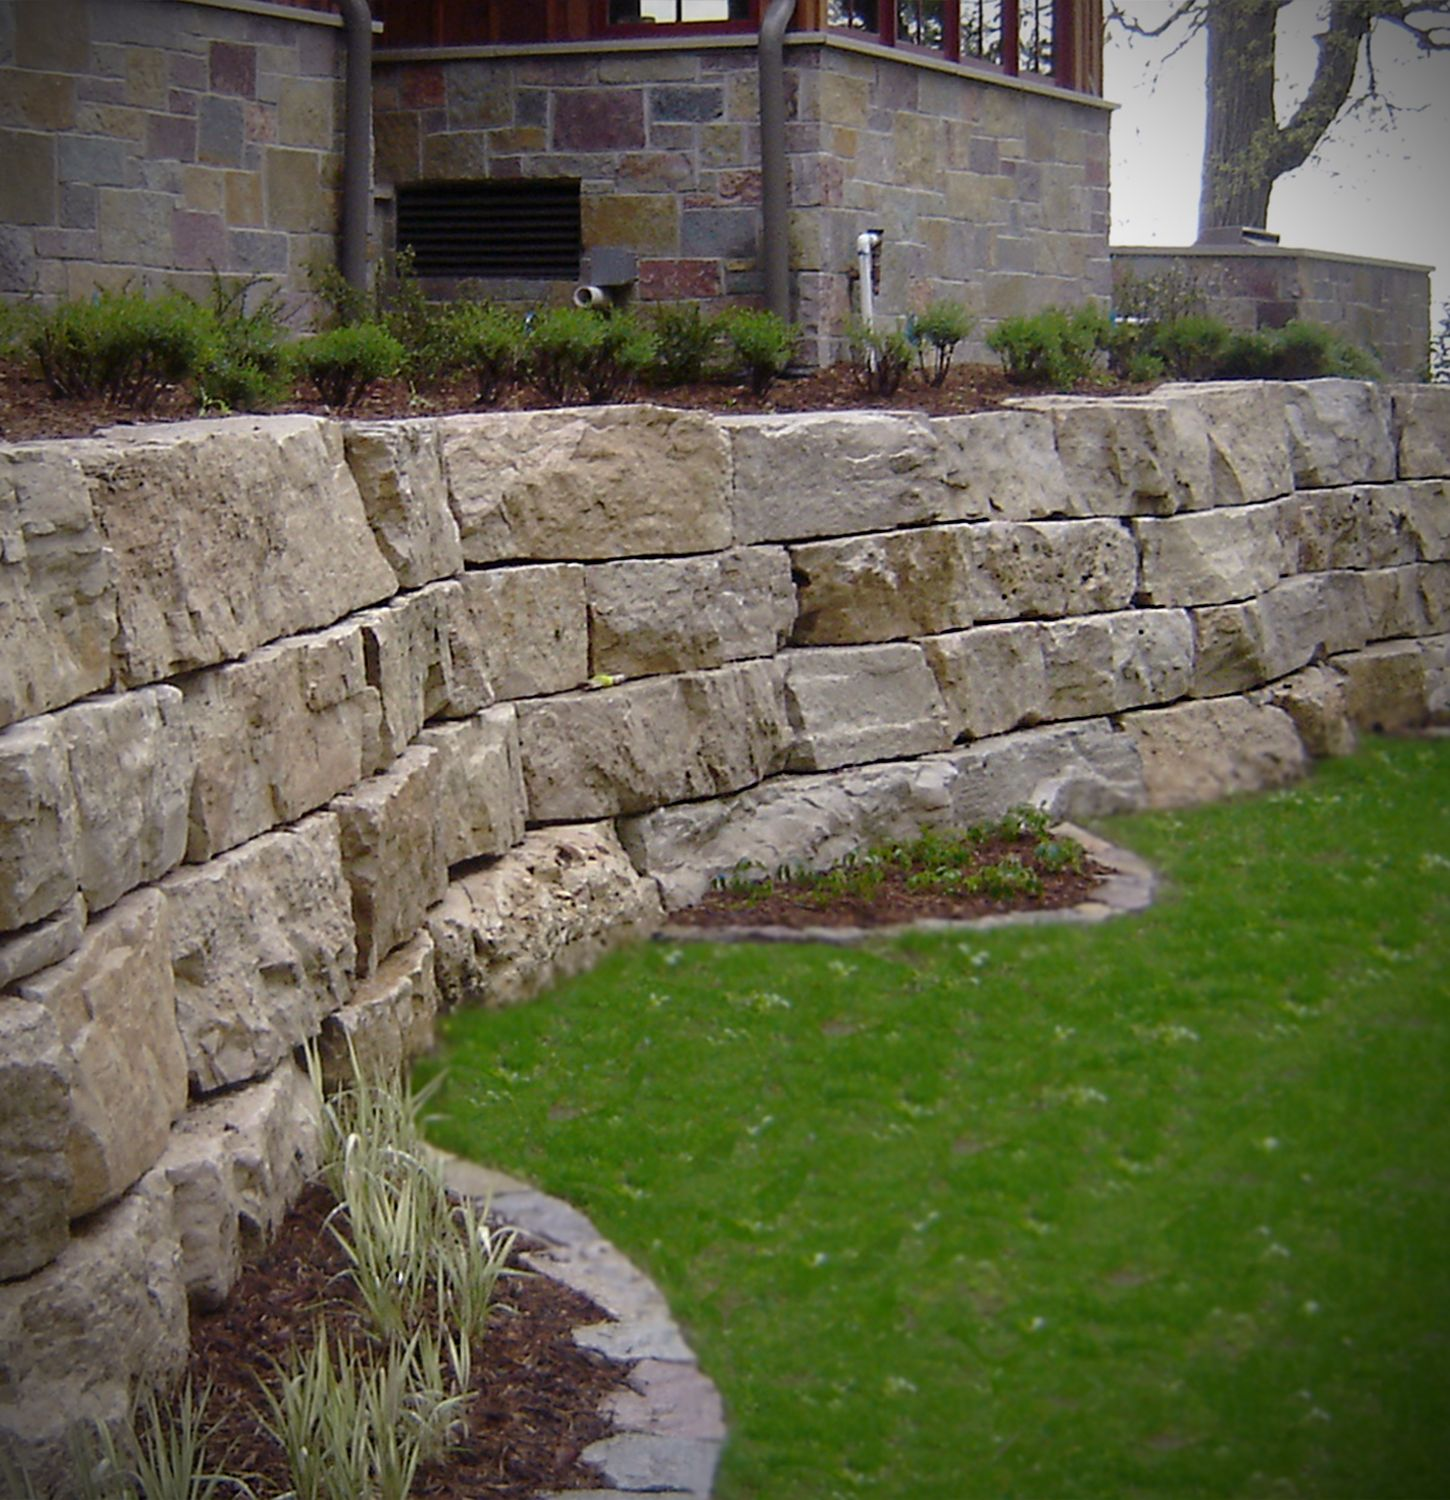 Castle Stone Home Outdoor Living Retaining Wall Veneer Stone Patio Fire Pit In 2020 Stacked Stone Walls Patio Stones Outdoor Stone